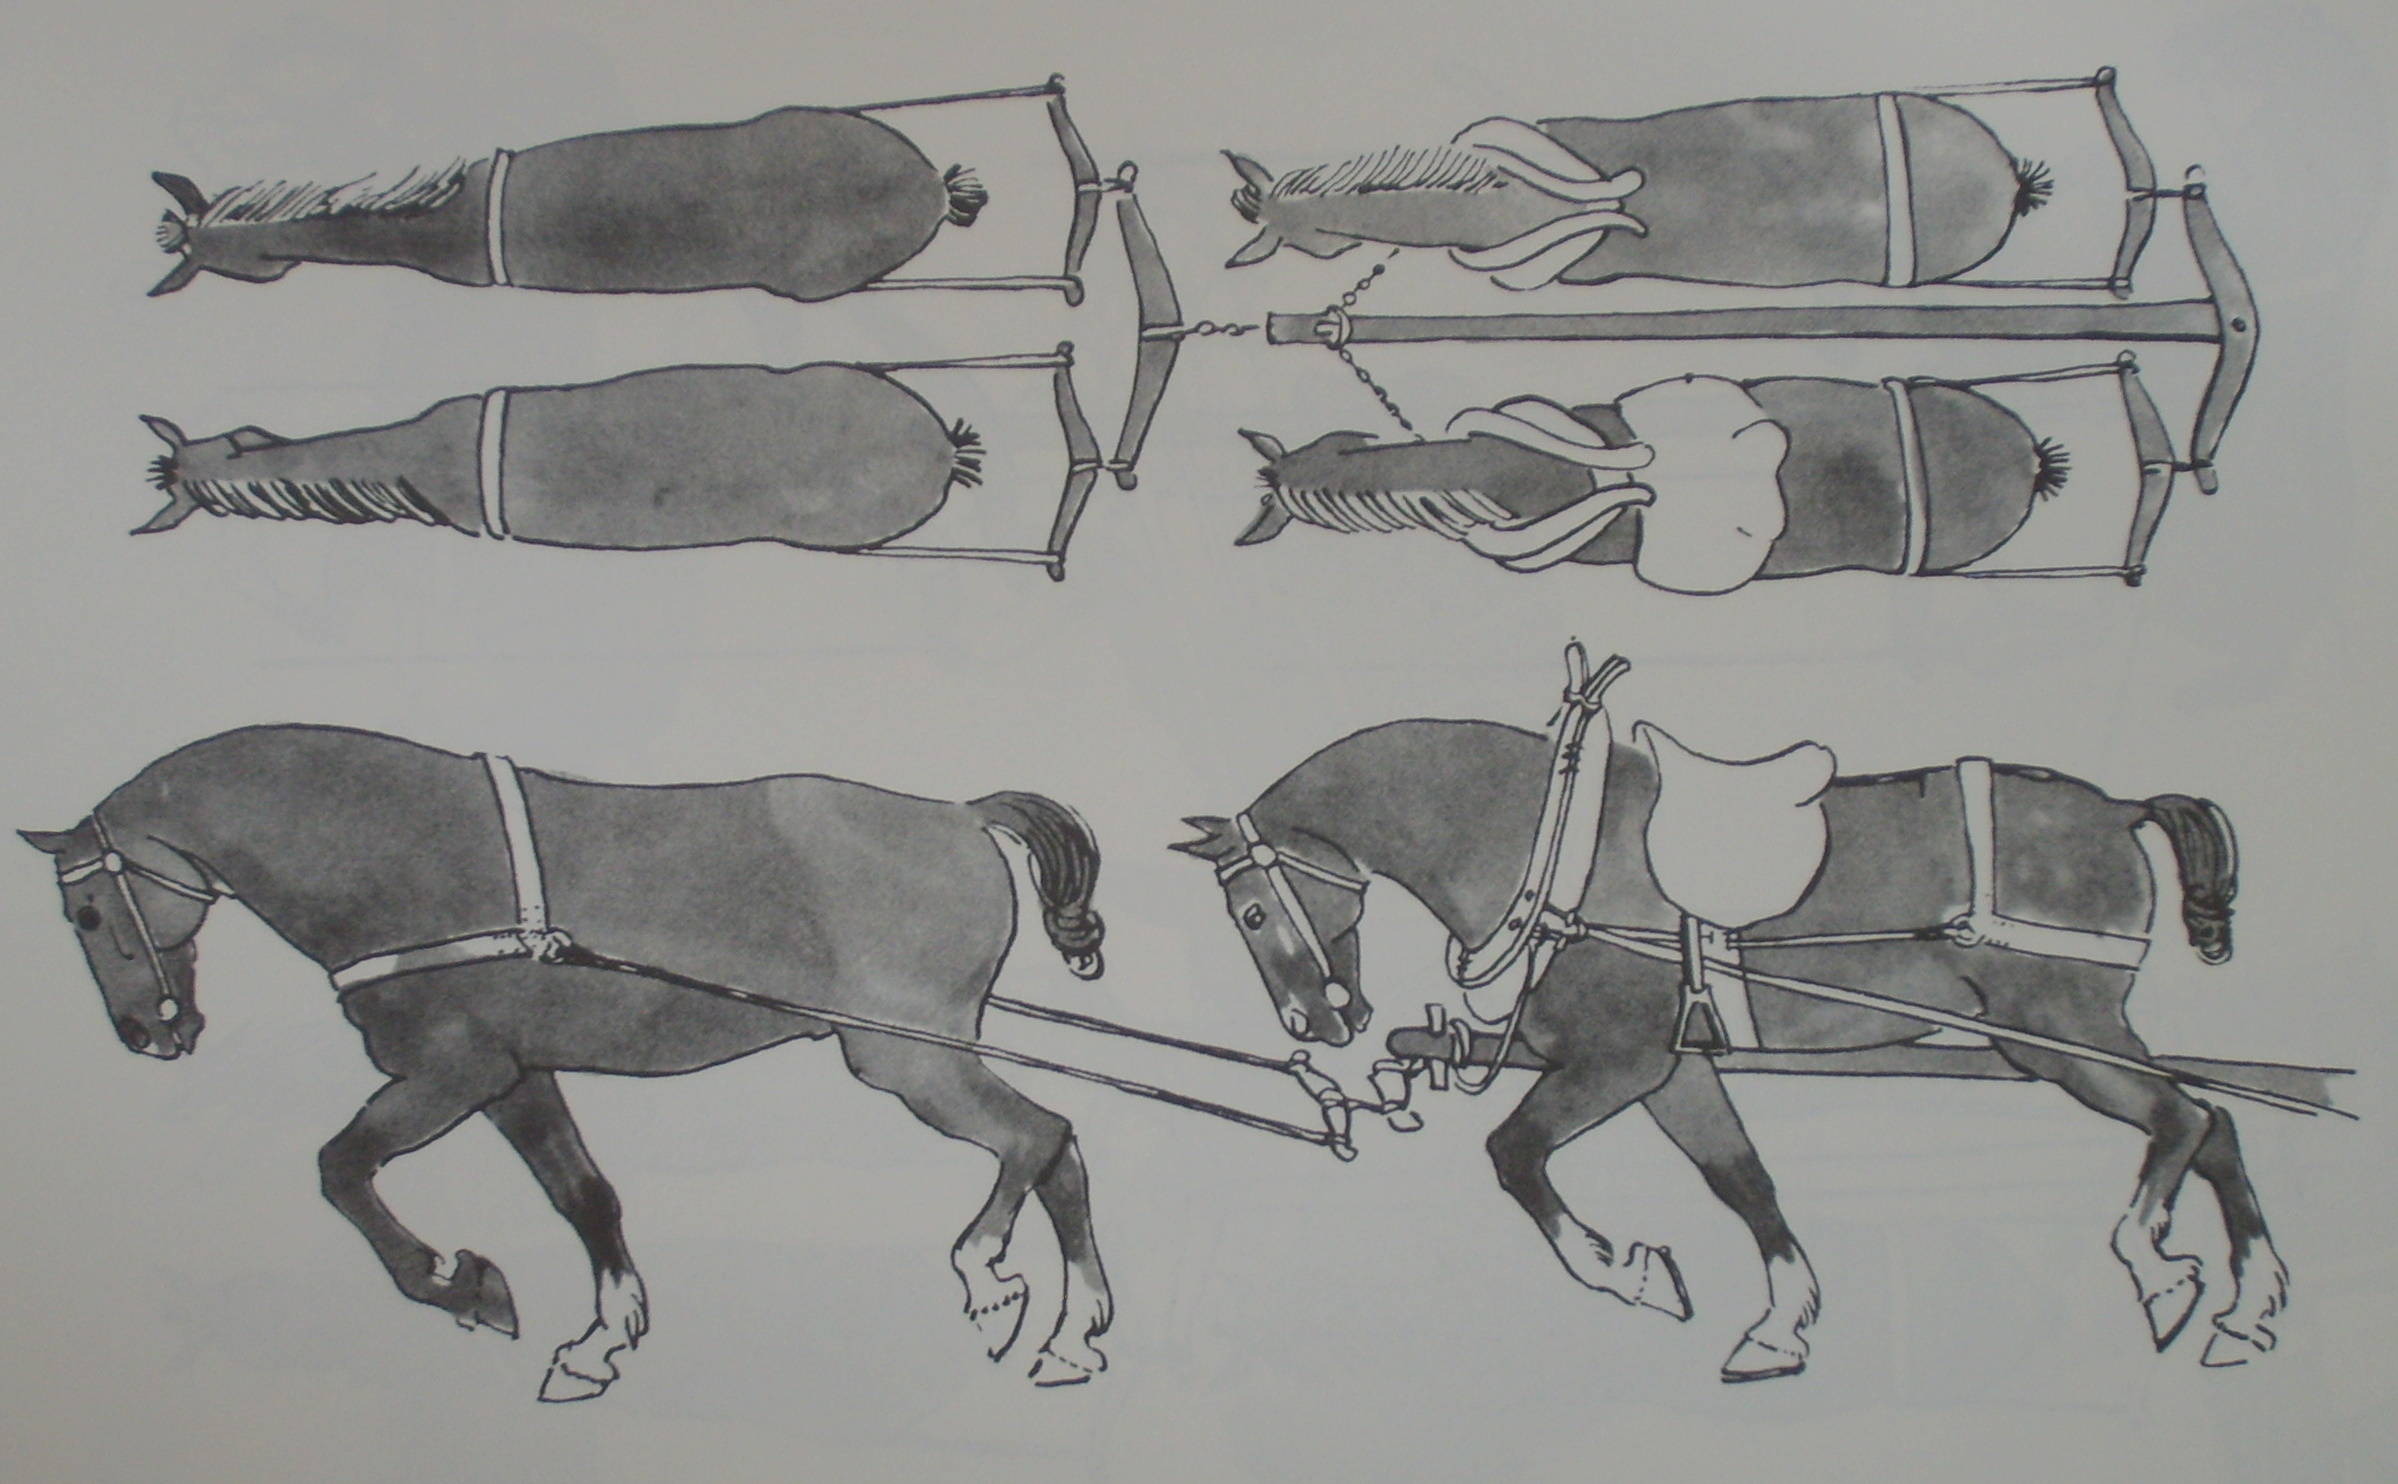 Horses in the Middle Ages | Military Wiki | FANDOM powered by Wikia